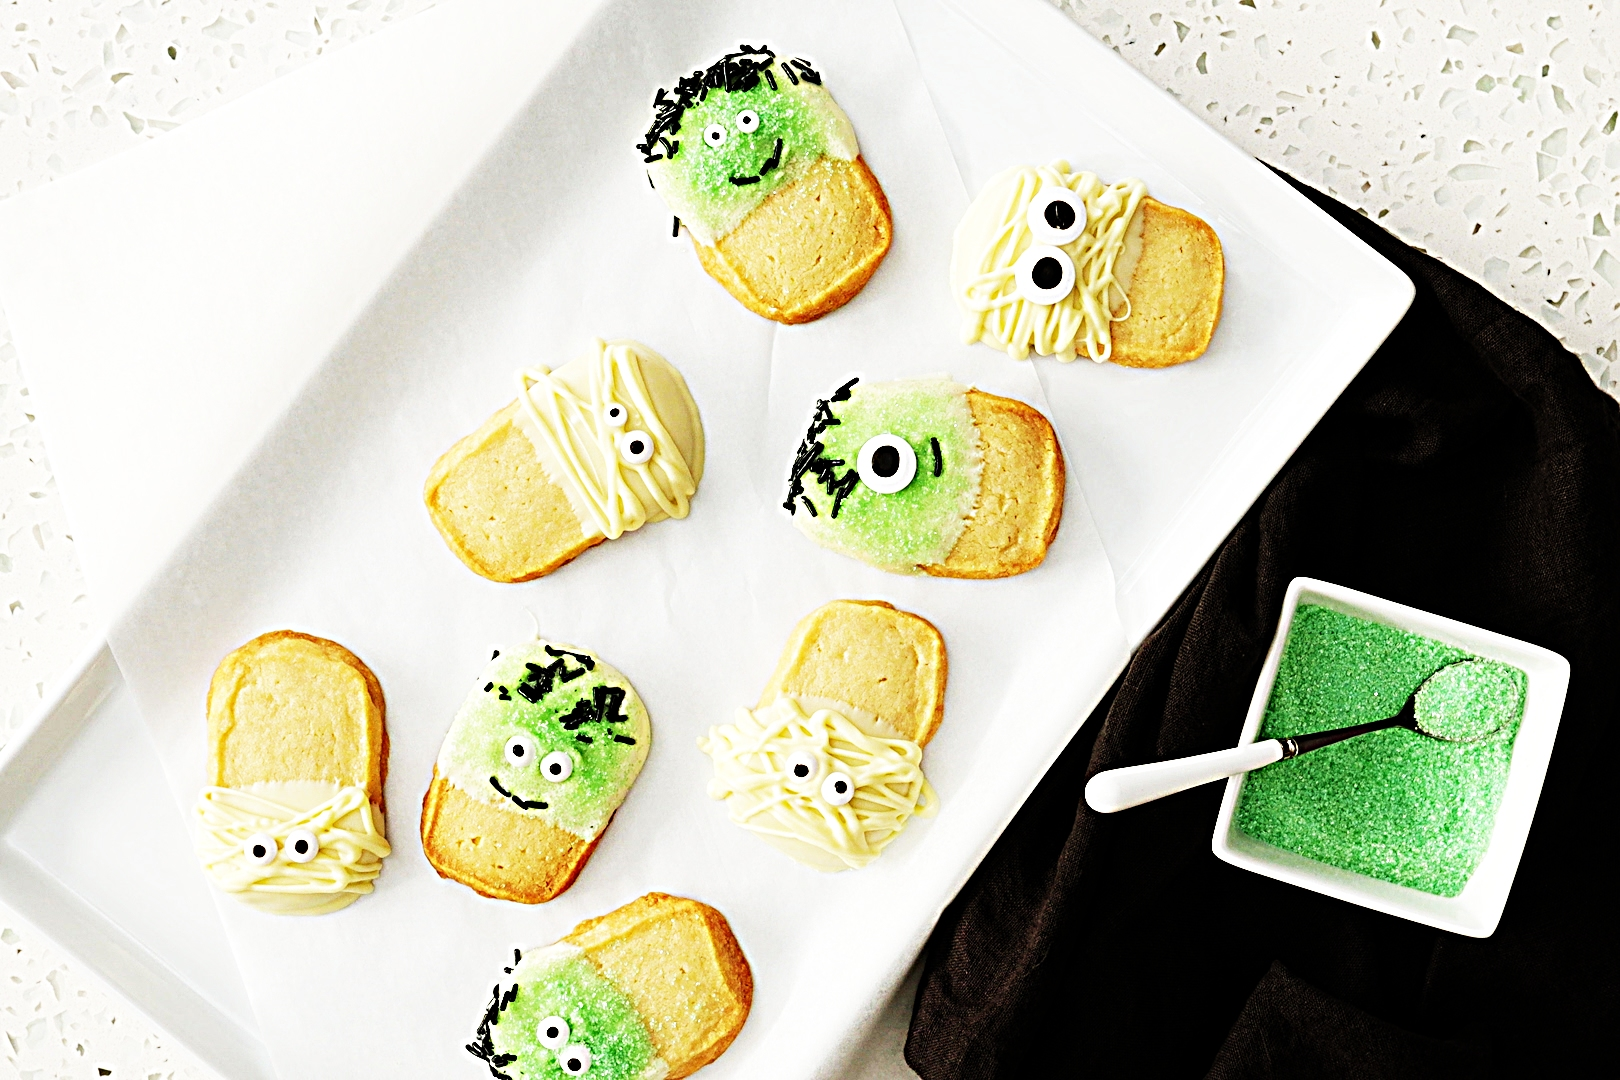 Stupid-Easy Recipe for Easy Slice and Bake Halloween Creature Cookies (#1 Top-Rated)